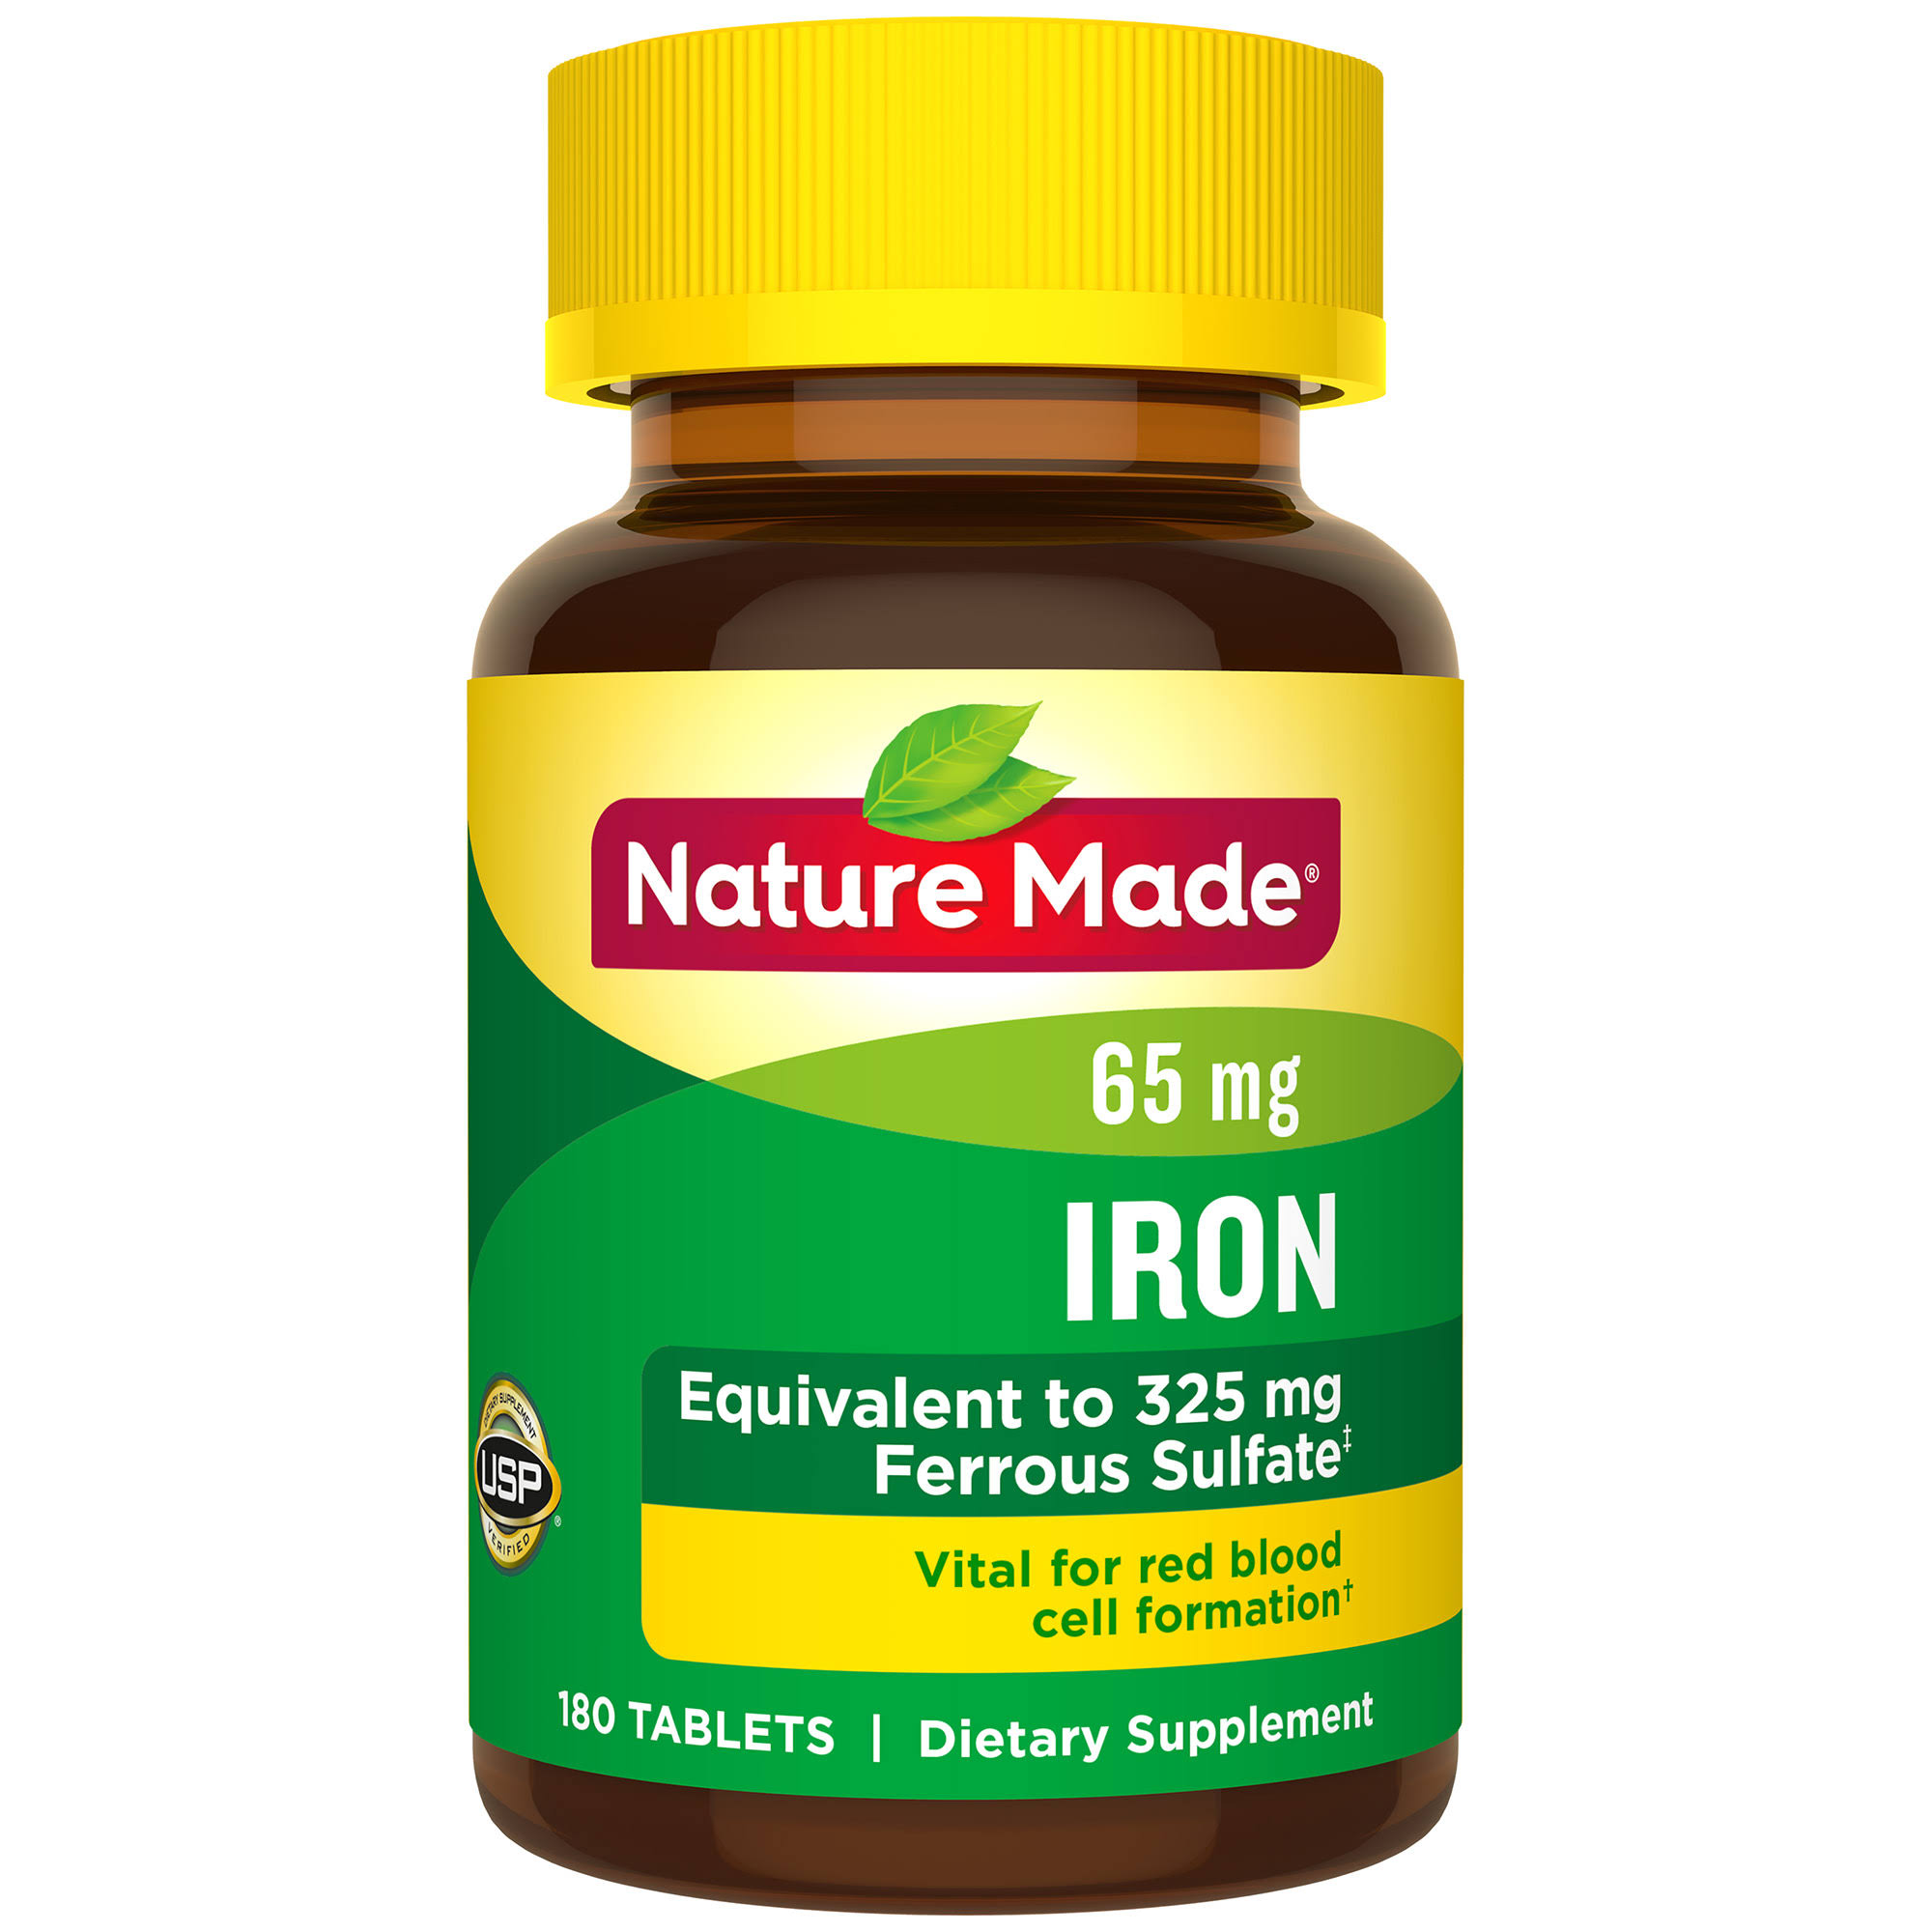 Nature Made Iron Supplement - 65mg, 180 Tablets